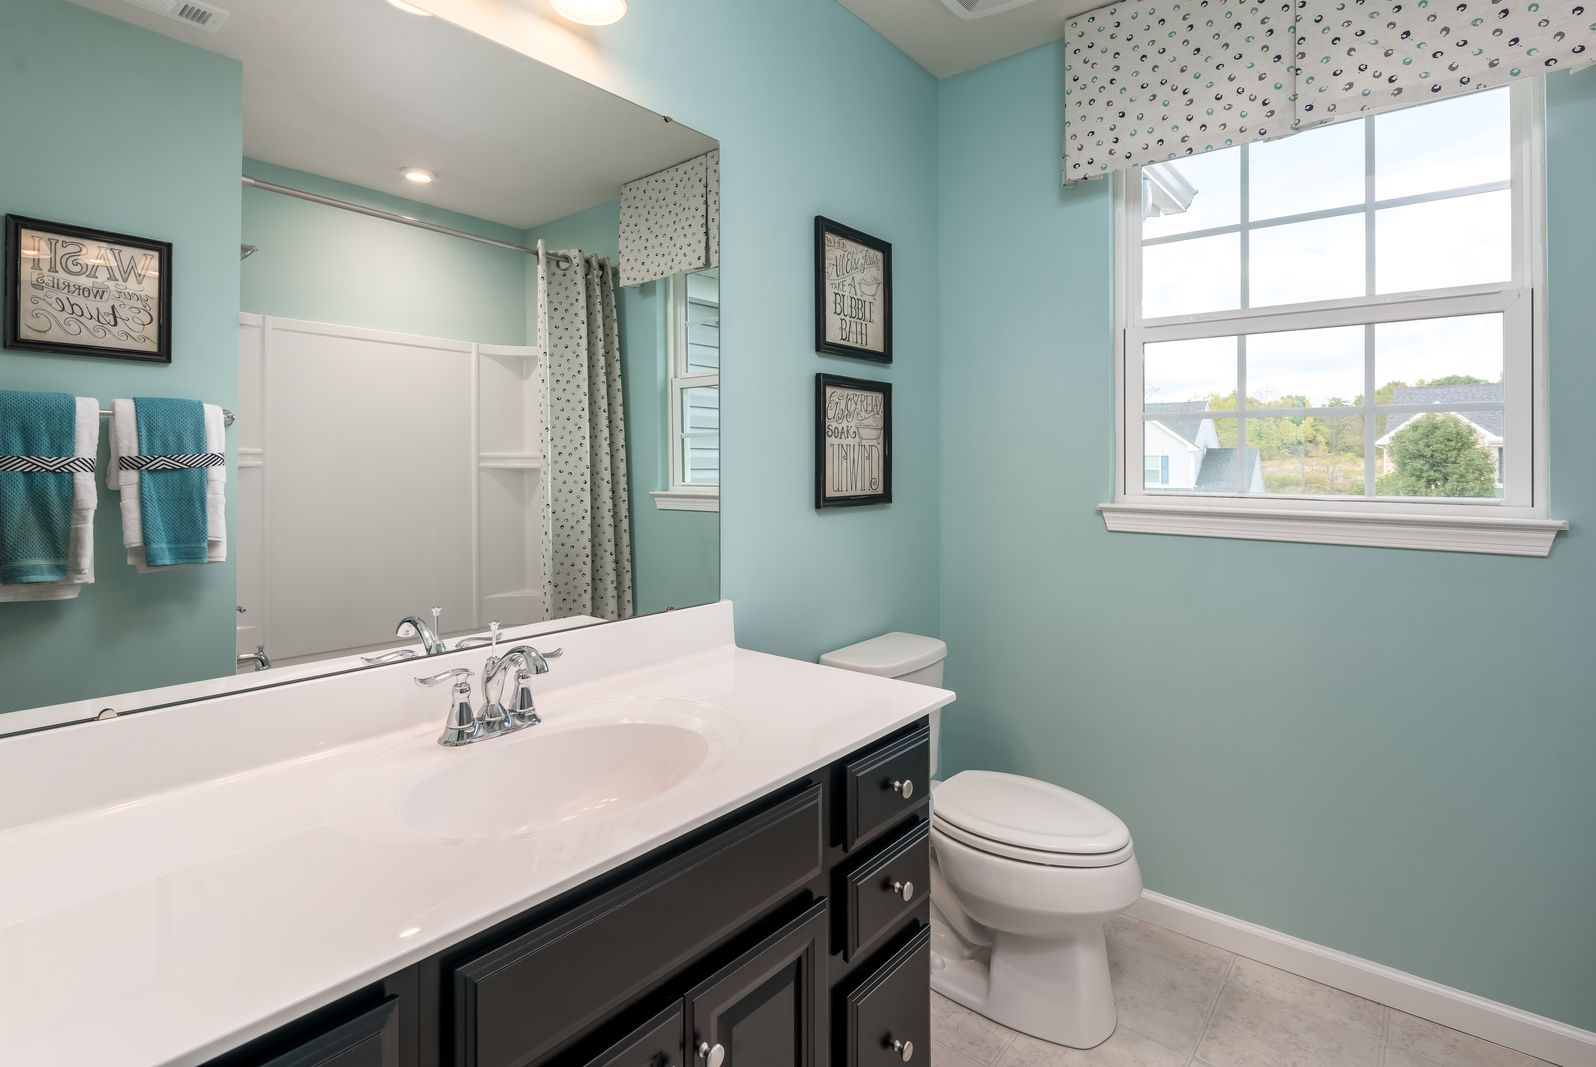 Bathroom featured in the Allegheny By Ryan Homes in York, PA